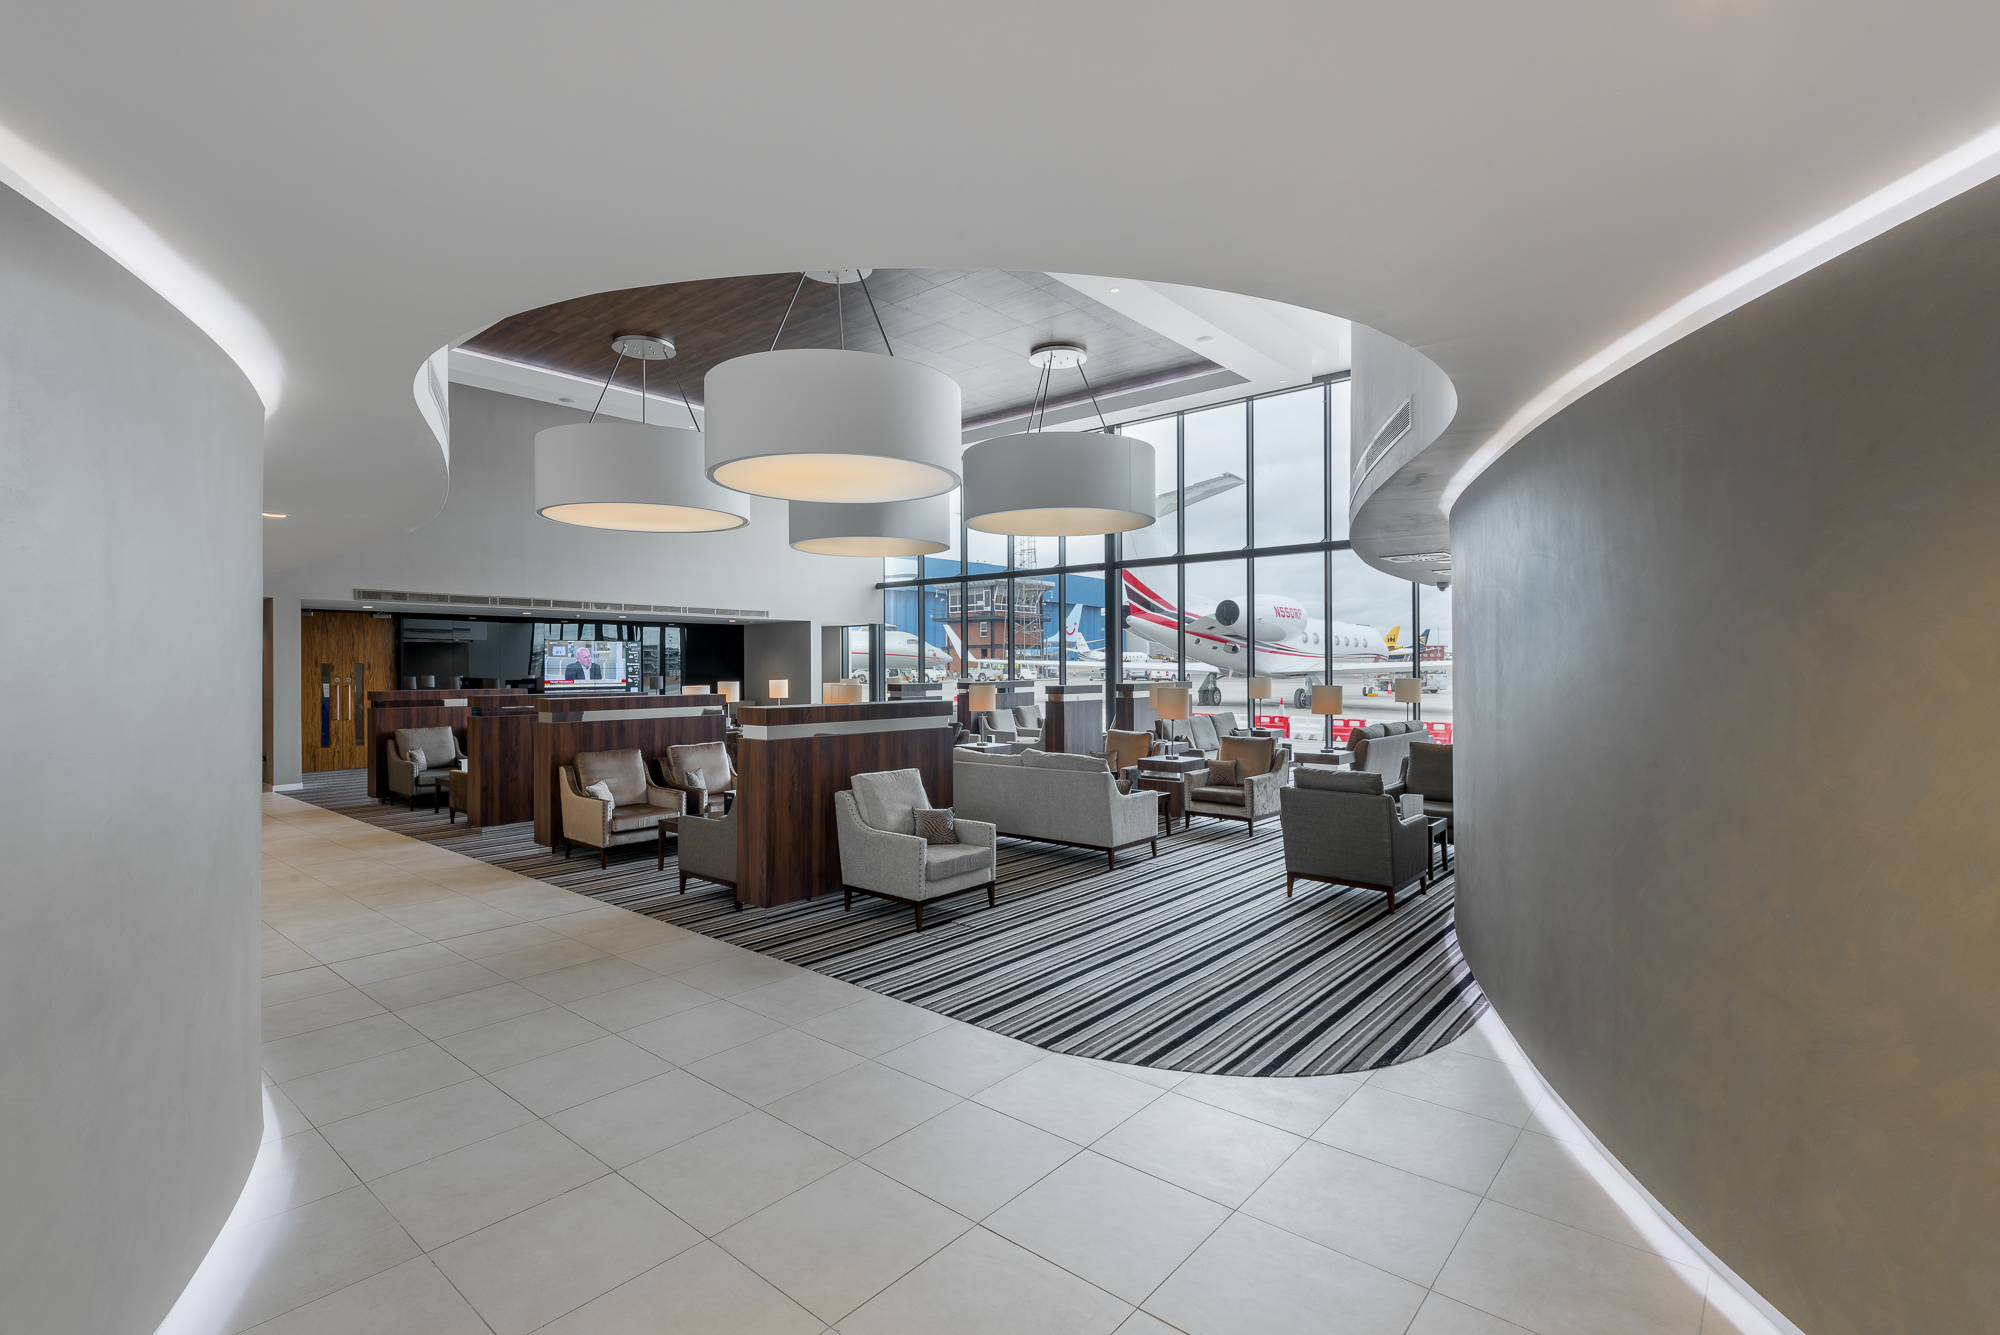 Commercial-interior-photography-luton-airport-9.jpg